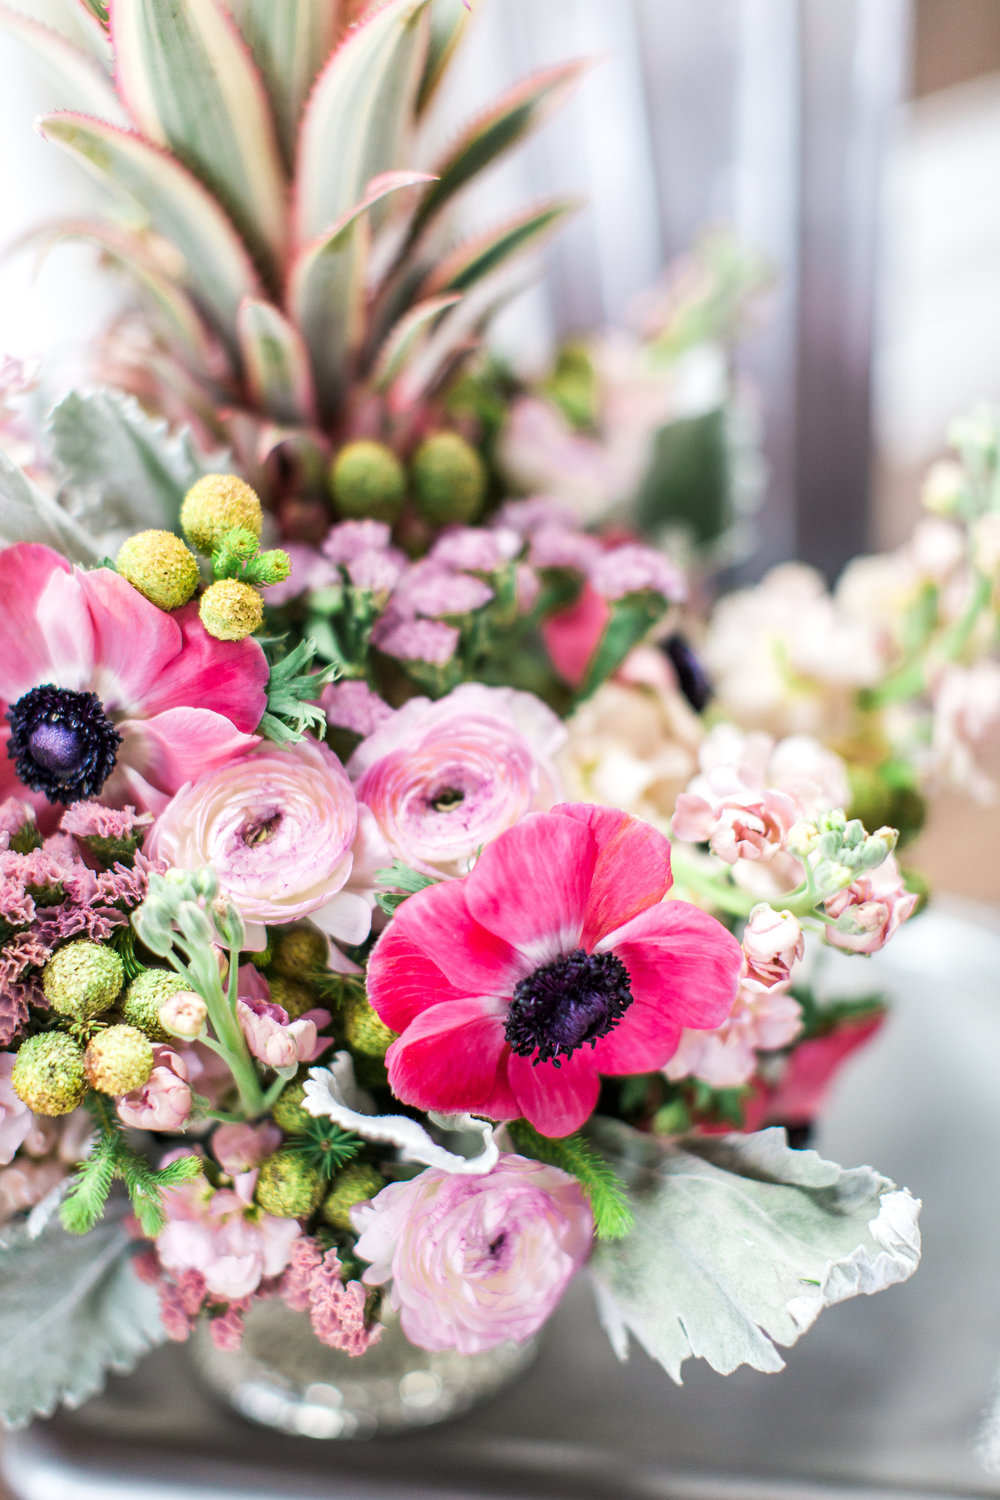 ivory-and-beau-savannah-wedding-florist-savannah-wedding-flowers-pineapple-pink-tropical-valentines-day-party-valentiens-day-flowers.jpg